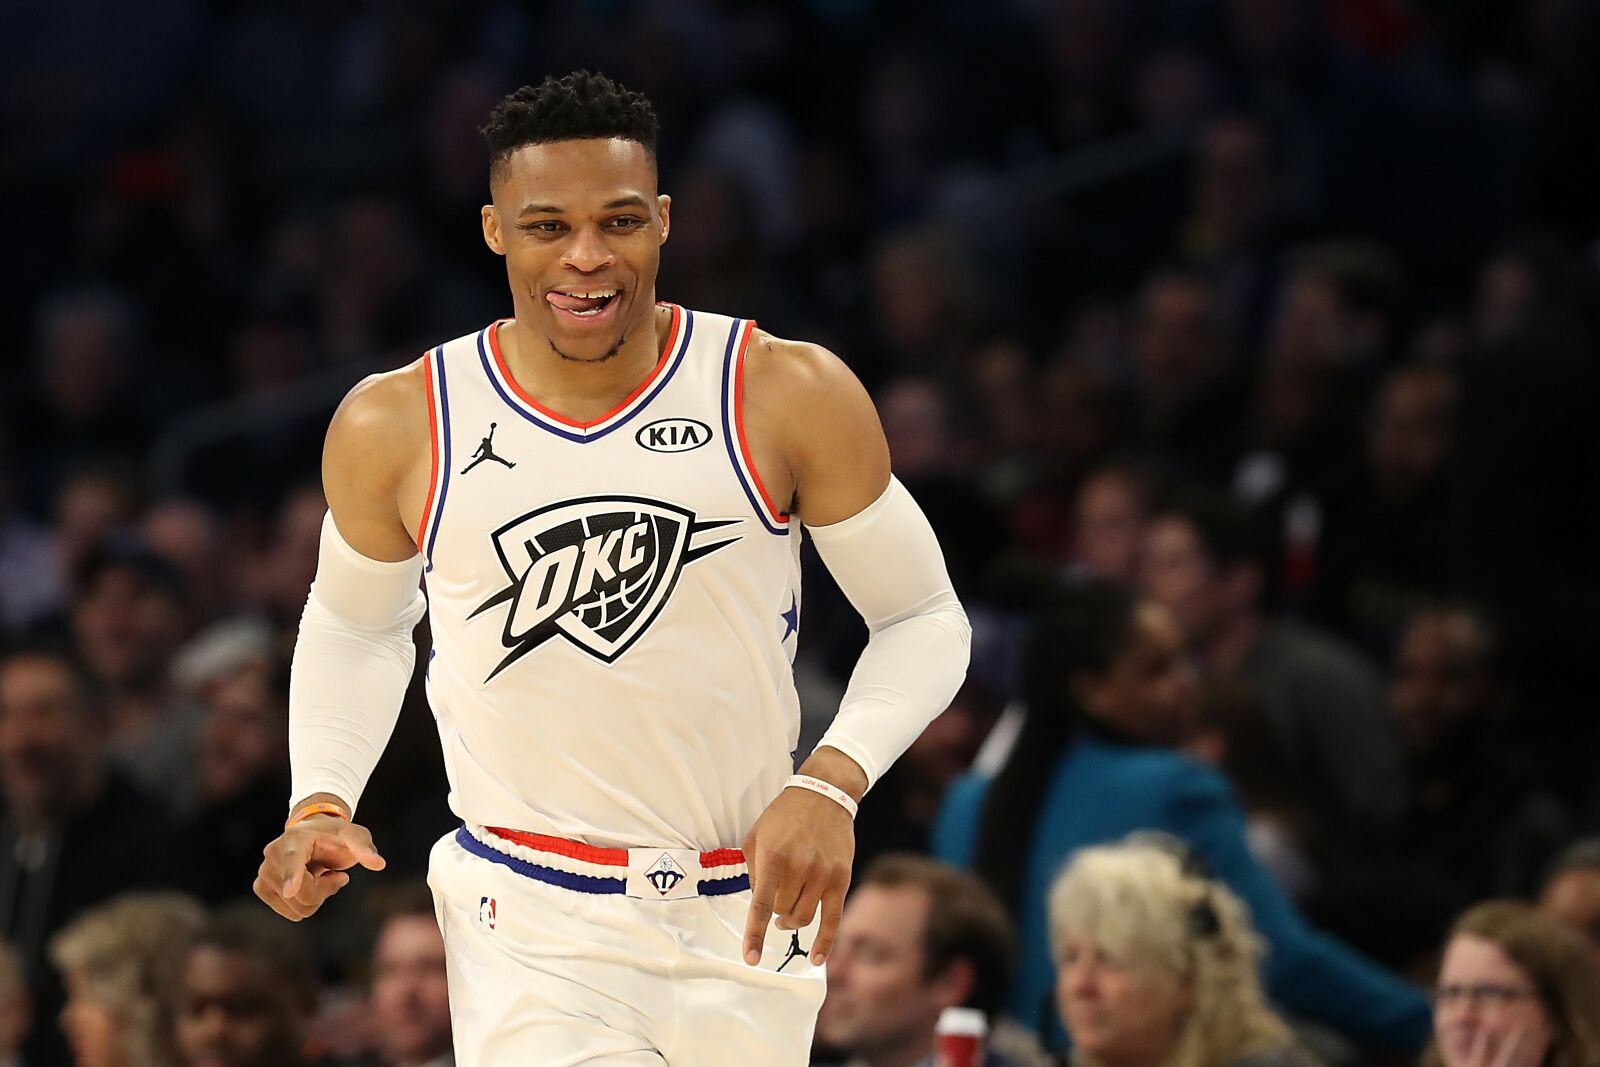 069ac3f71e2 Oklahoma City Thunder: The criticism of Russell Westbrook is misplaced